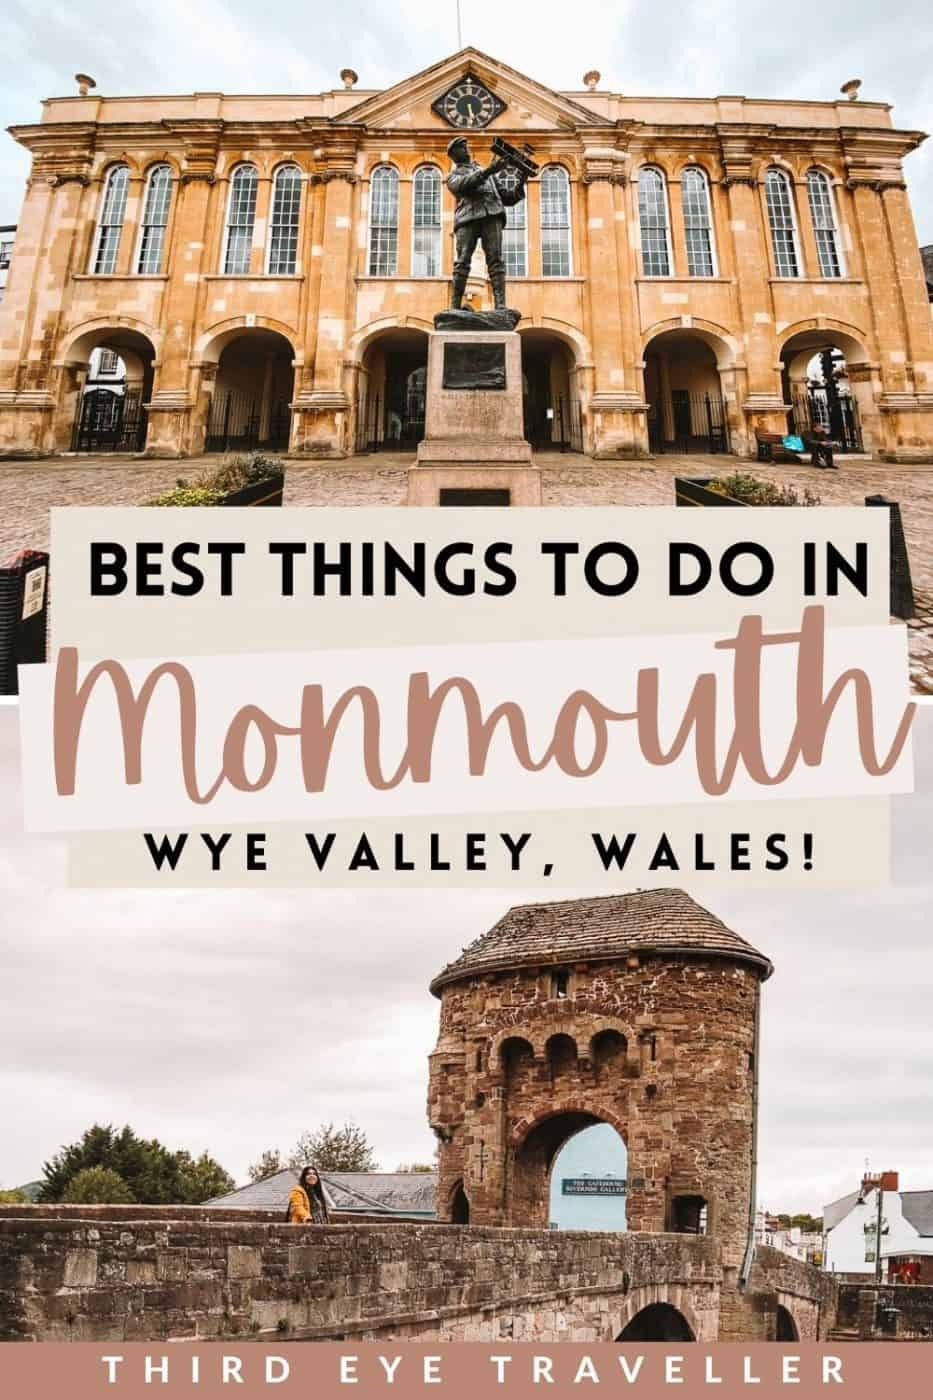 things to do in monmouth wales wye valley 1